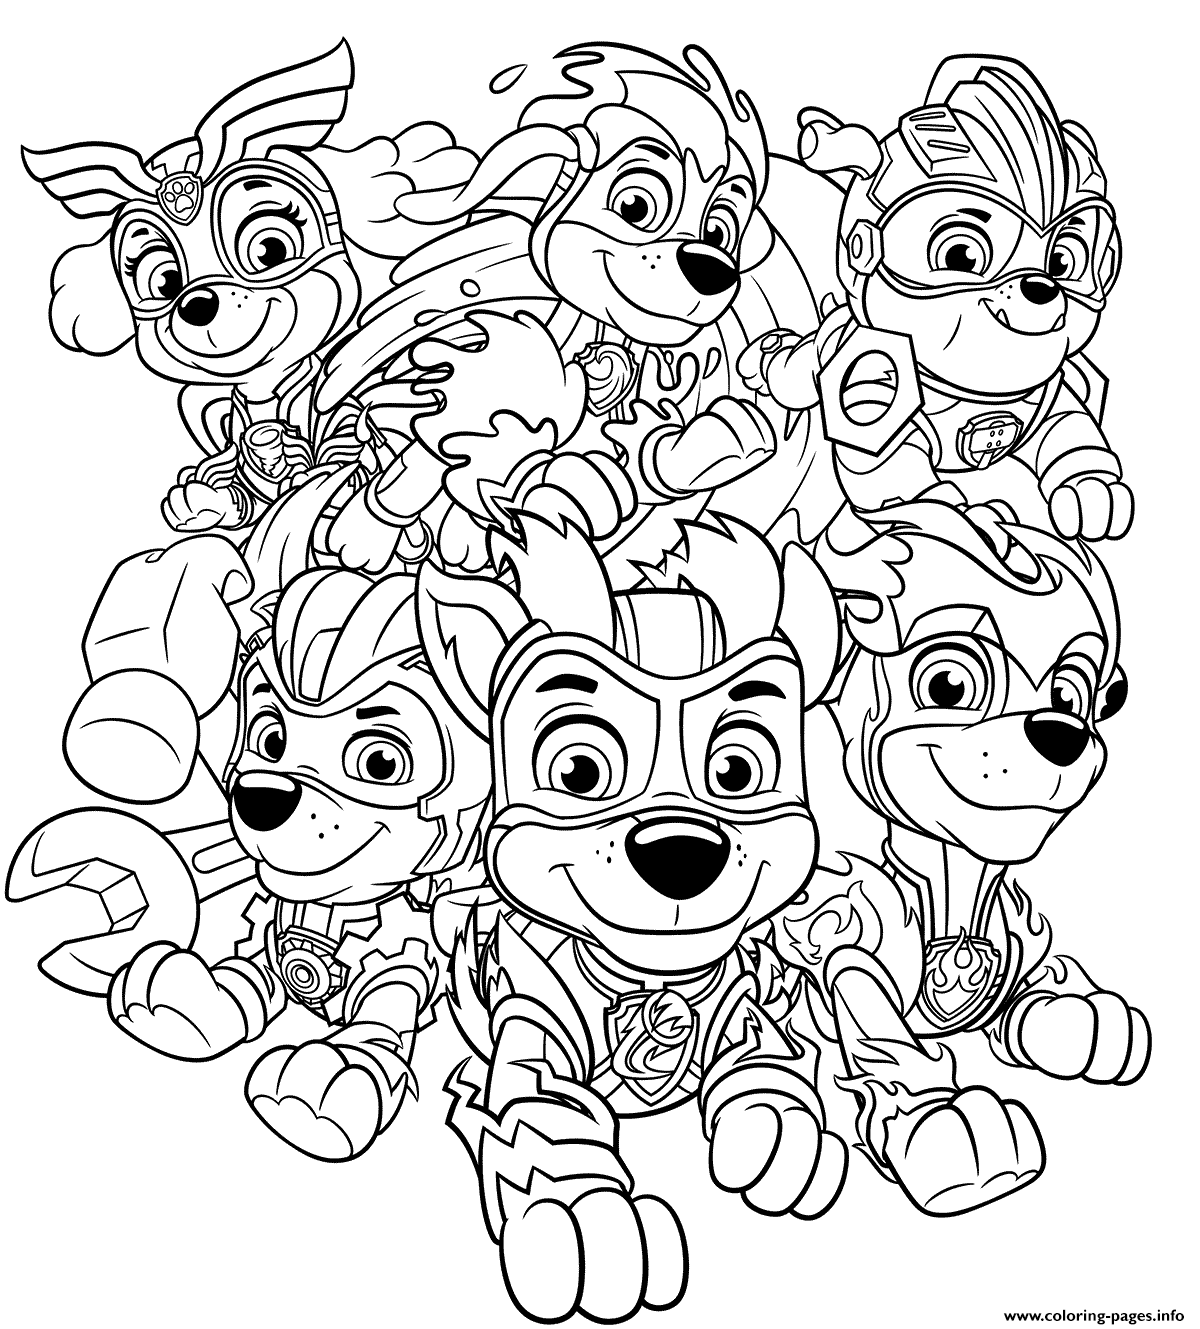 Mighty Pups Charged Up Coloring Pages Printable